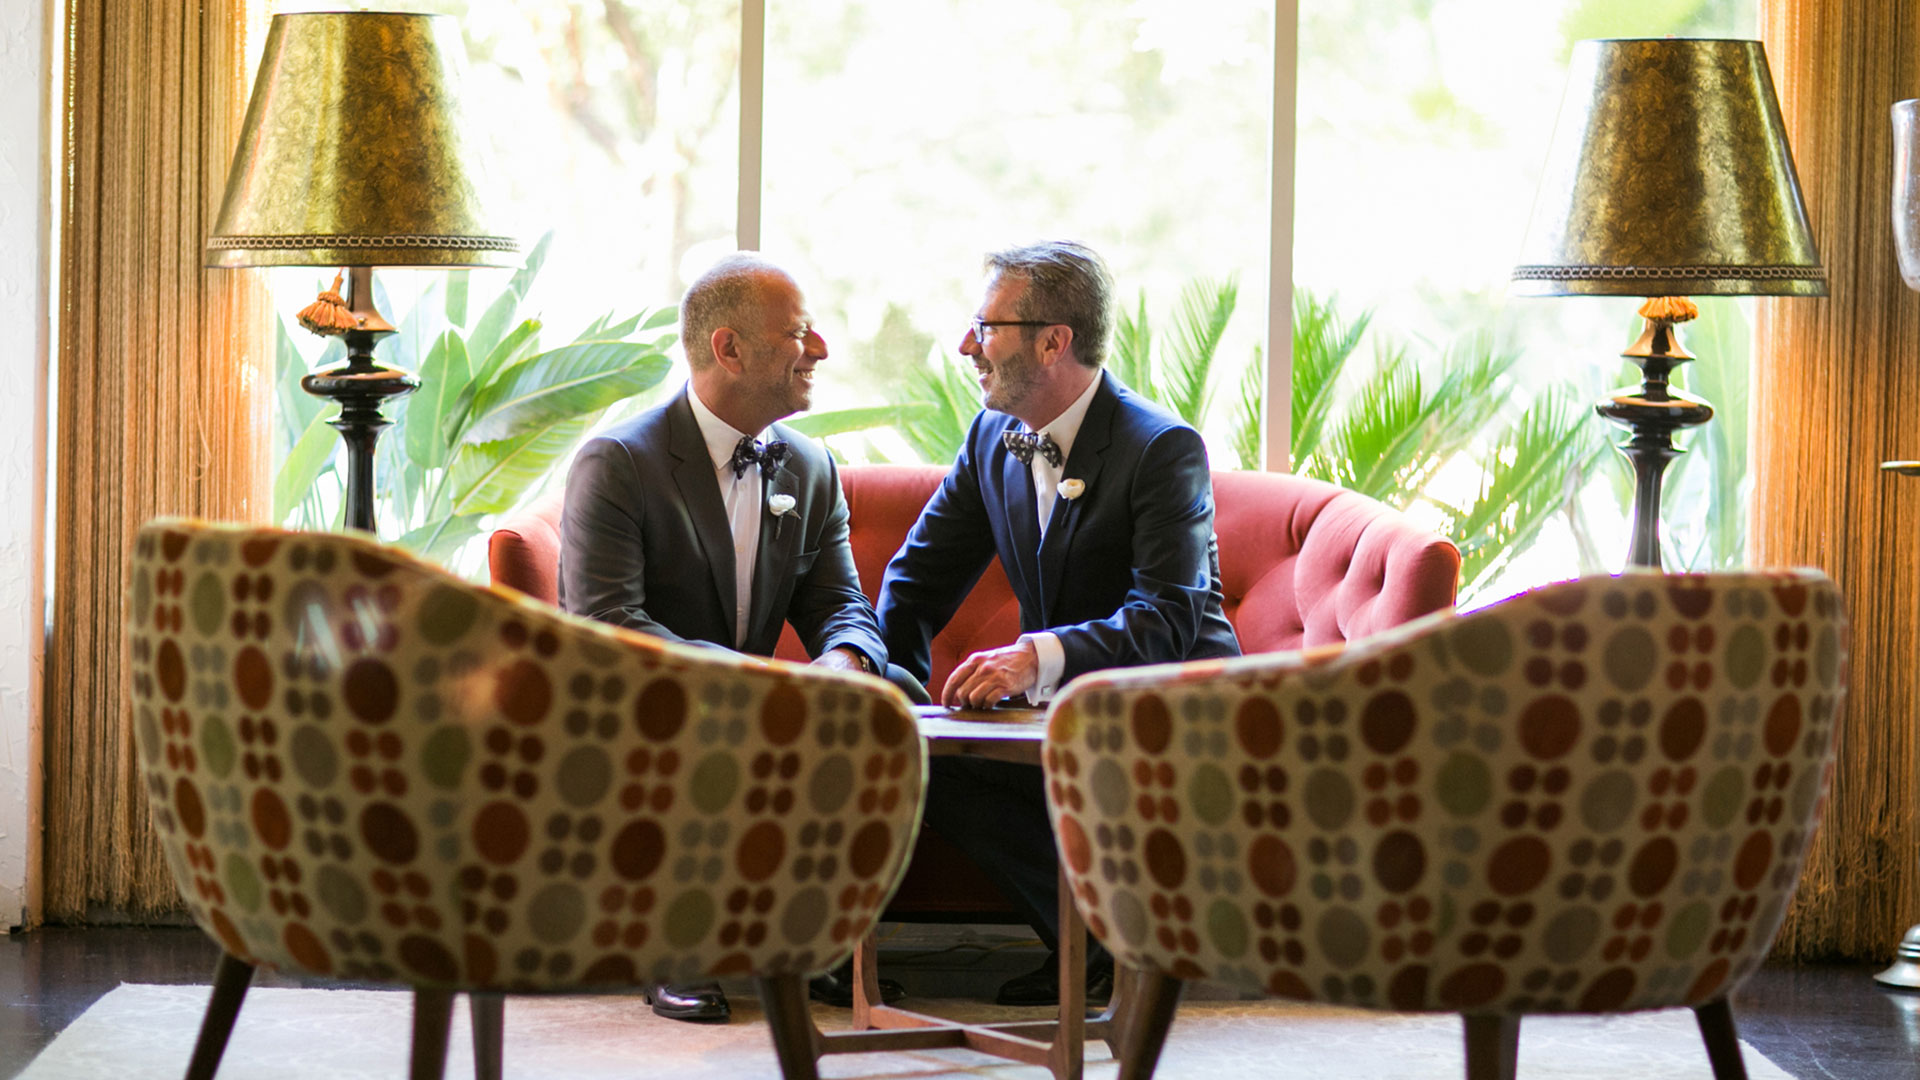 lgbt wedding in palm springs